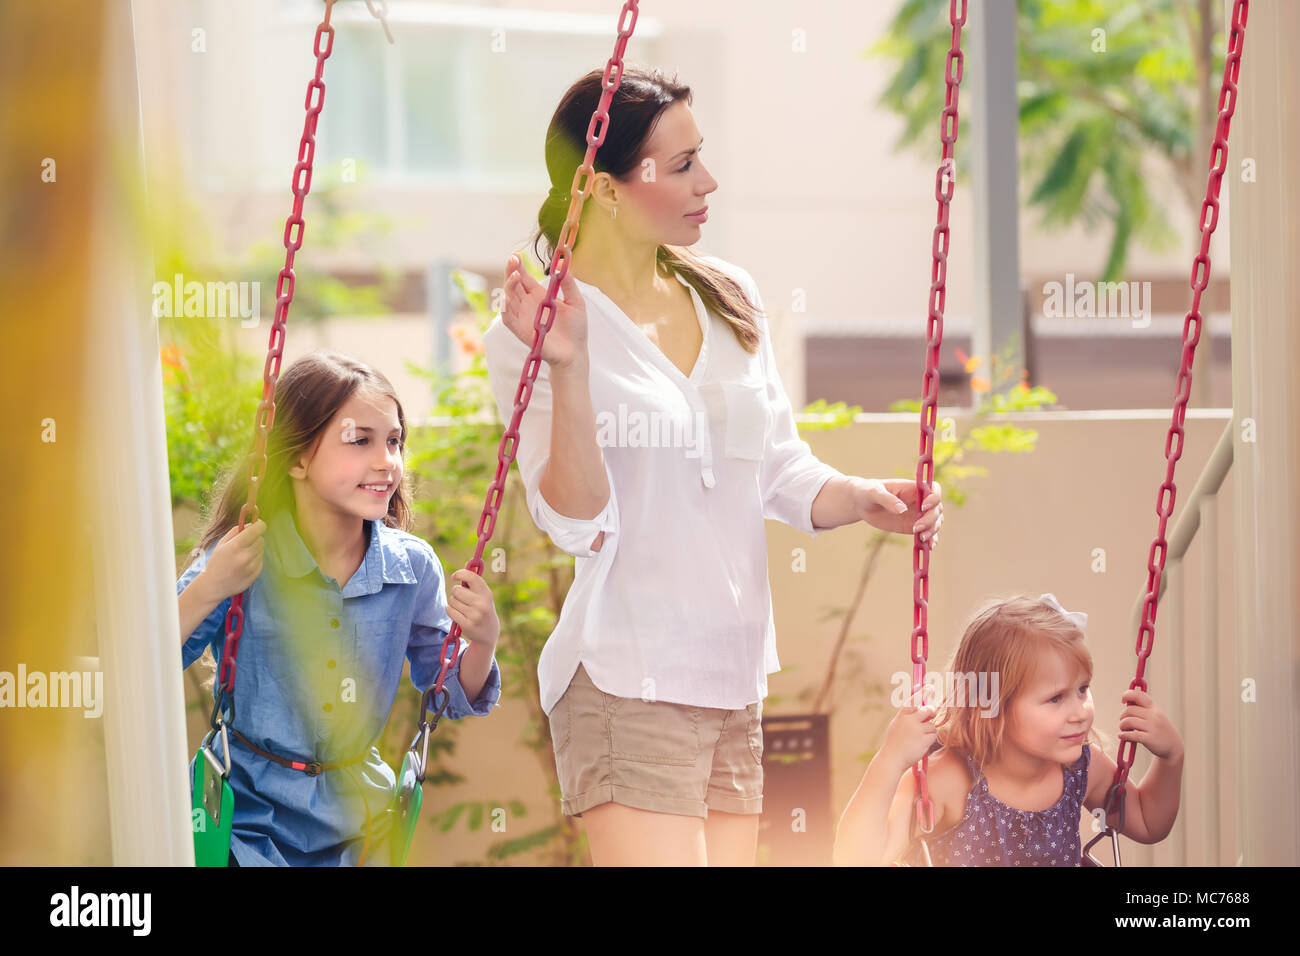 Mother with two daughters on playground, beautiful young mom rocks her precious girls on the swing, happy family spending weekend together - Stock Image